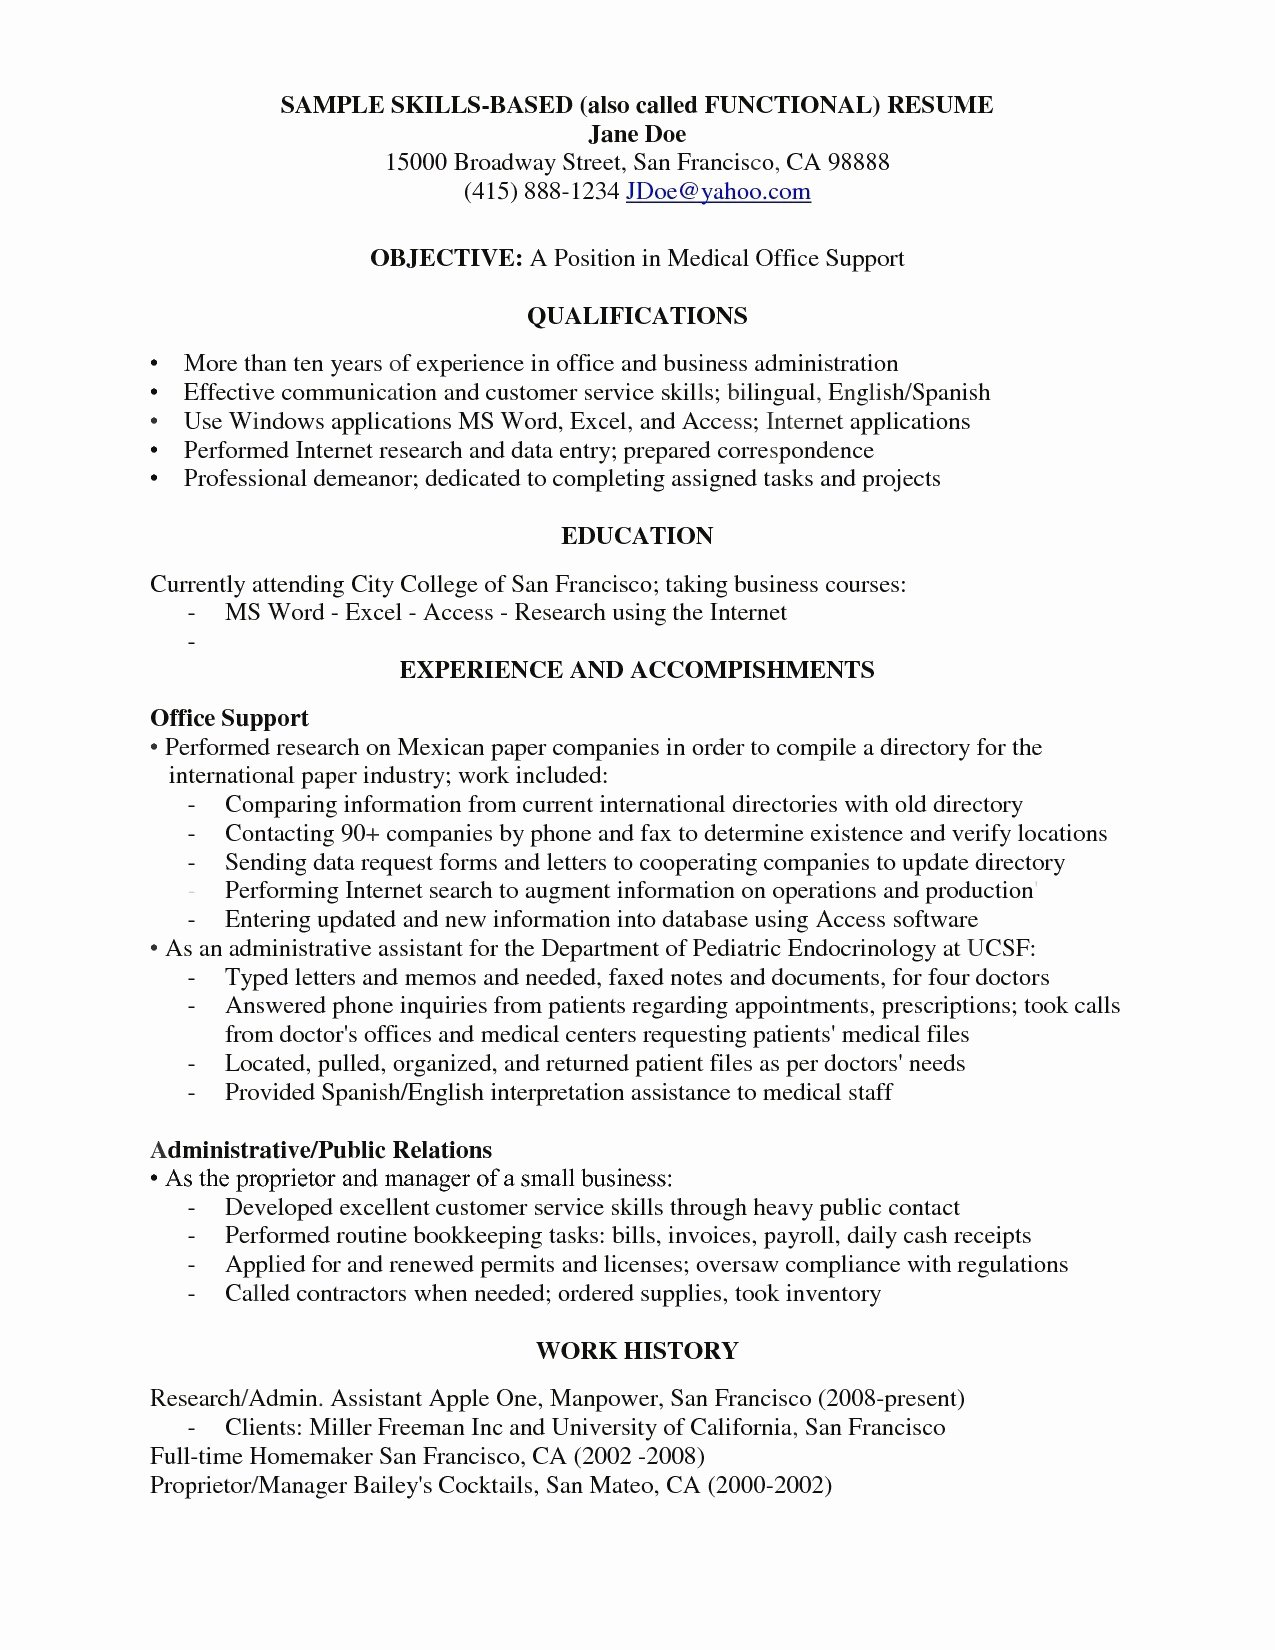 Functional Resume Template Examples Plete Guide Inside